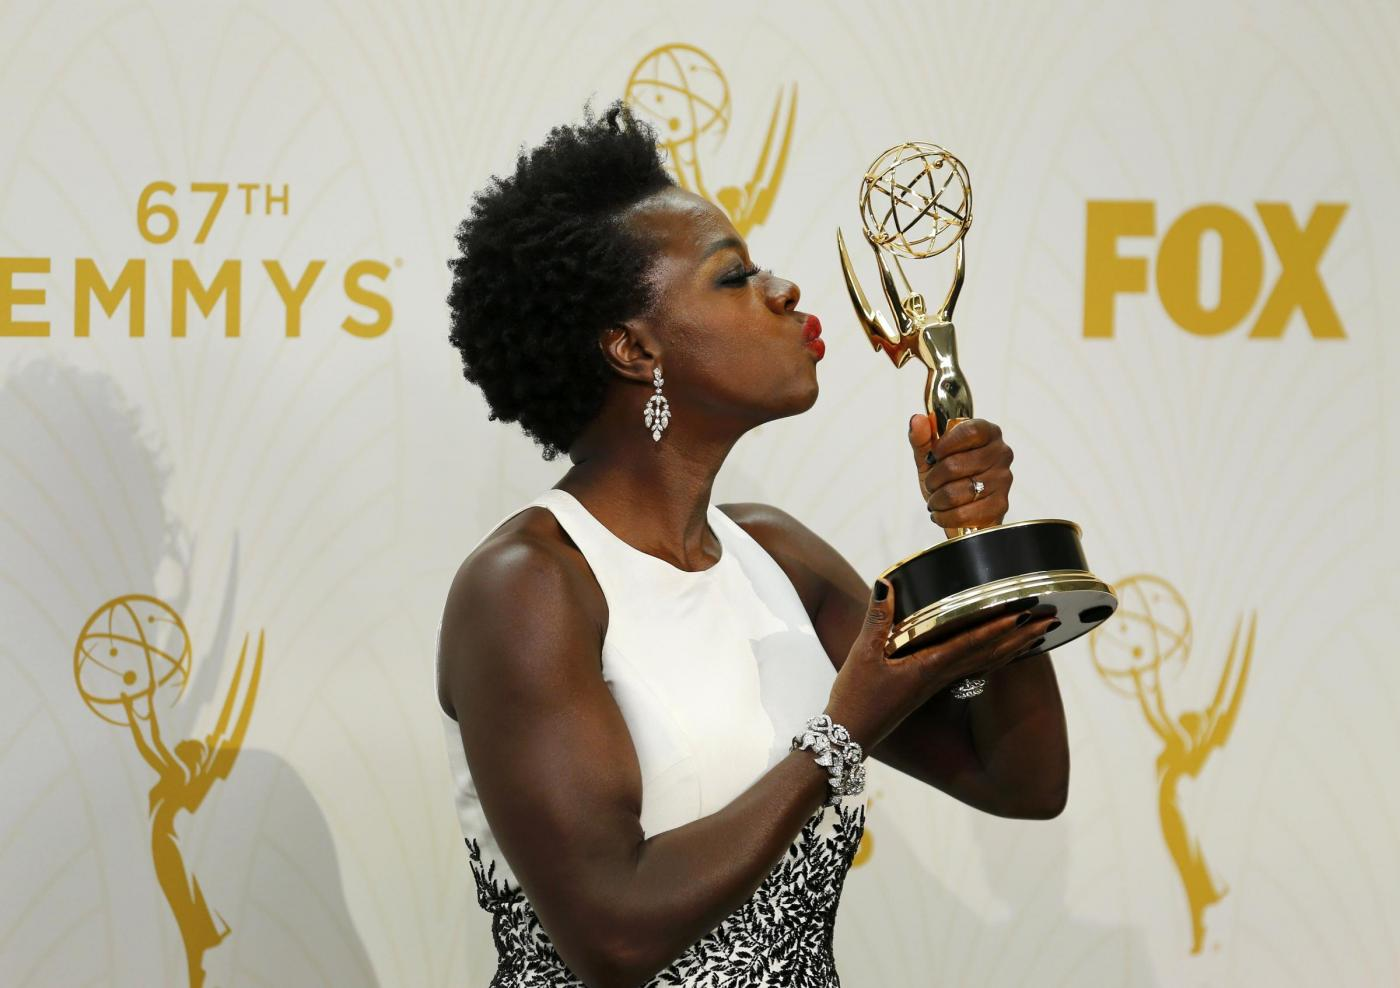 Emmy Awards 2015, vincitori: trionfo per Games of Thrones e Viola Davis